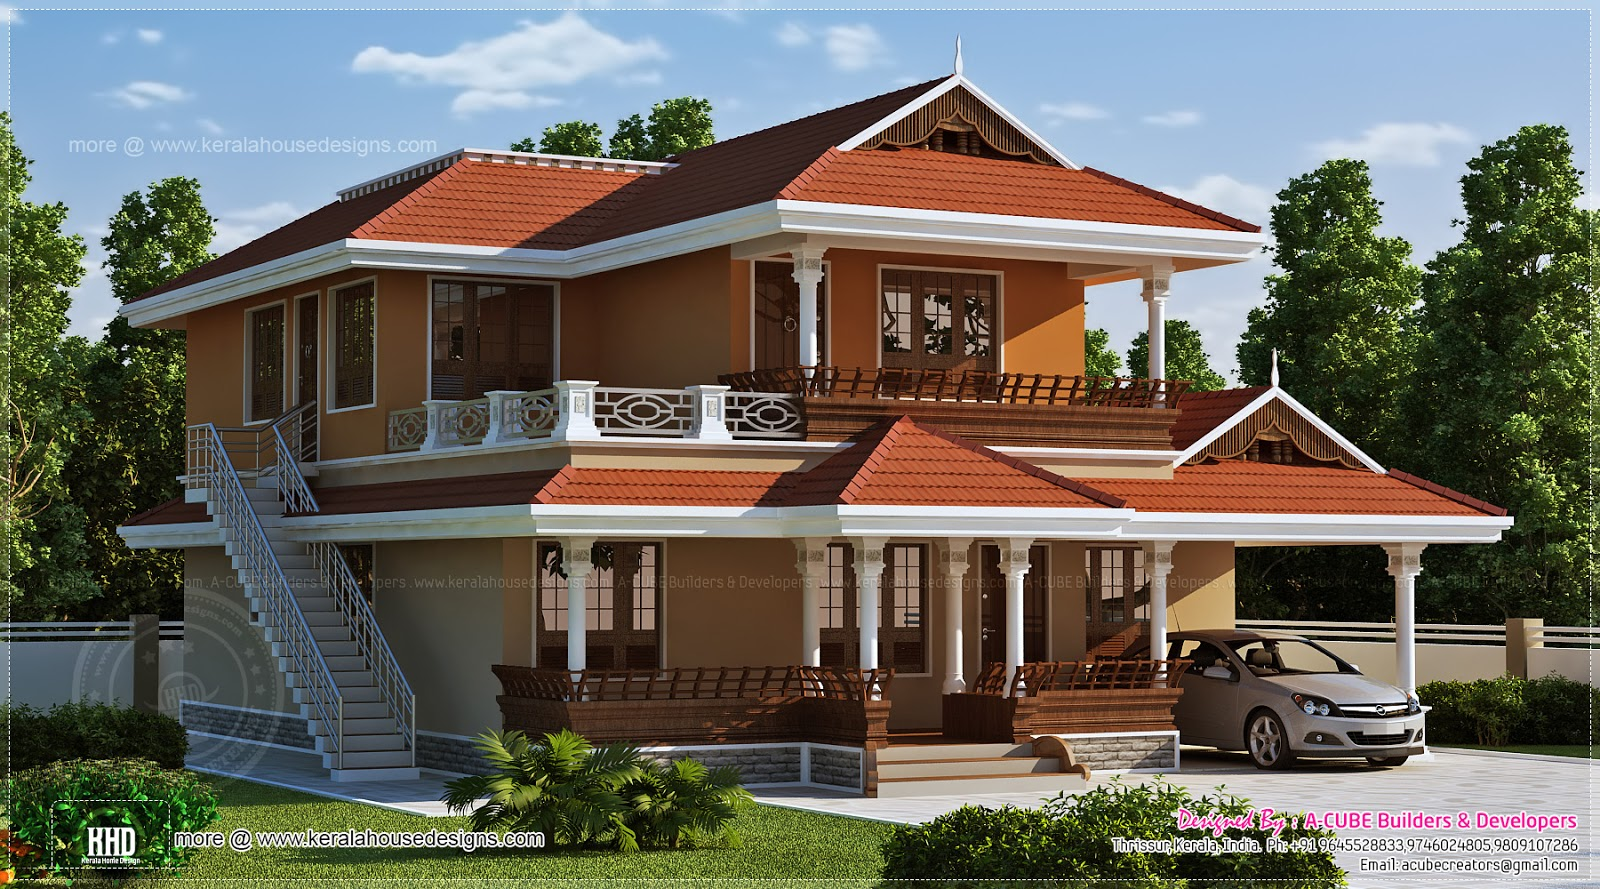 autocad house roof designs html with 2466 Sq Ft Beautiful Kerala House Design on 2013 04 01 archive moreover Full Curved Roof Modern Home likewise 2466 Sq Ft Beautiful Kerala House Design in addition 423daca081625f12 3 Story Narrow Lot House Plans Luxury Narrow Lot House Plans furthermore Duplex House Plan And Elevation 2310 Sq.